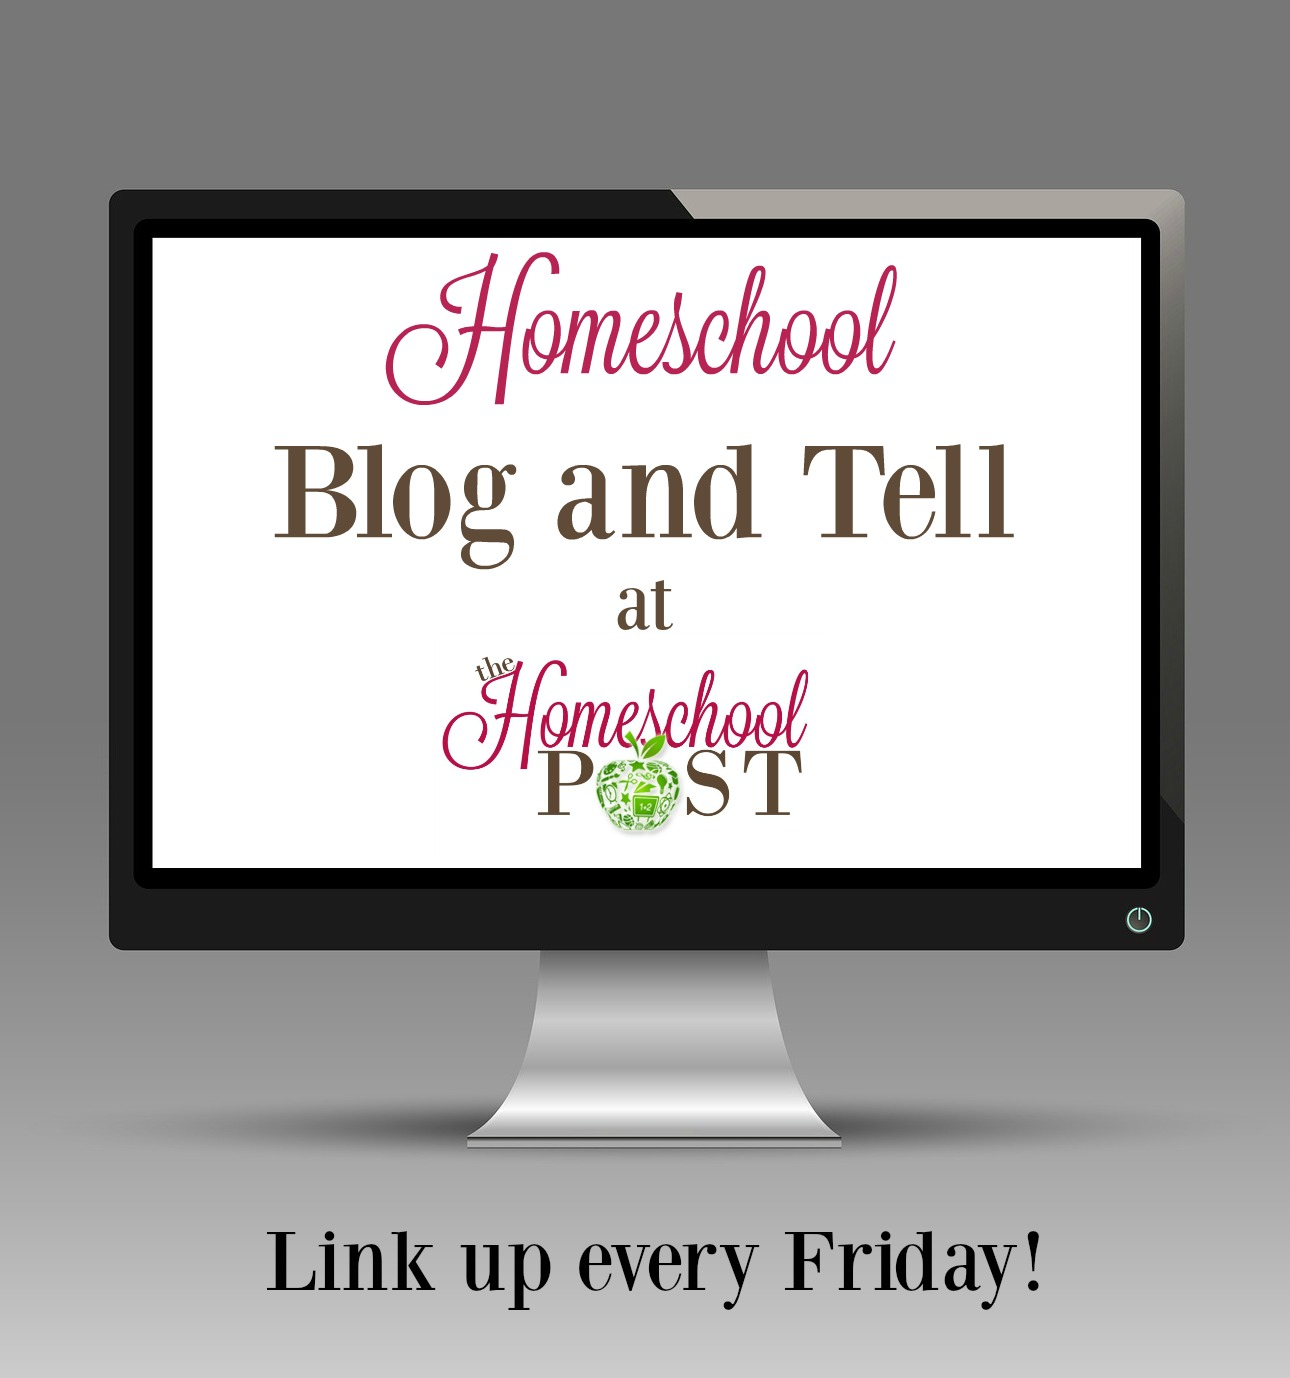 The Homeschool Blog and Tell